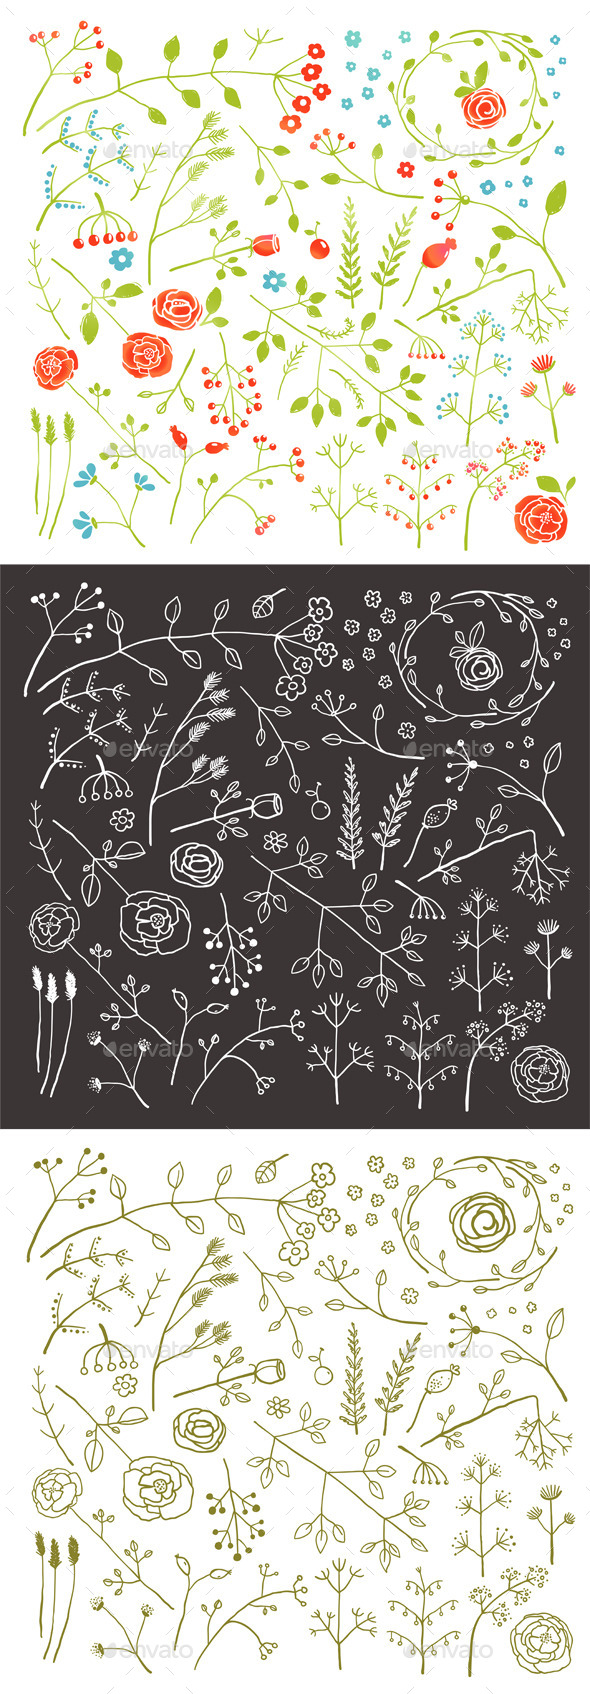 Floral Doodle Field Flowers and Plants Decoration